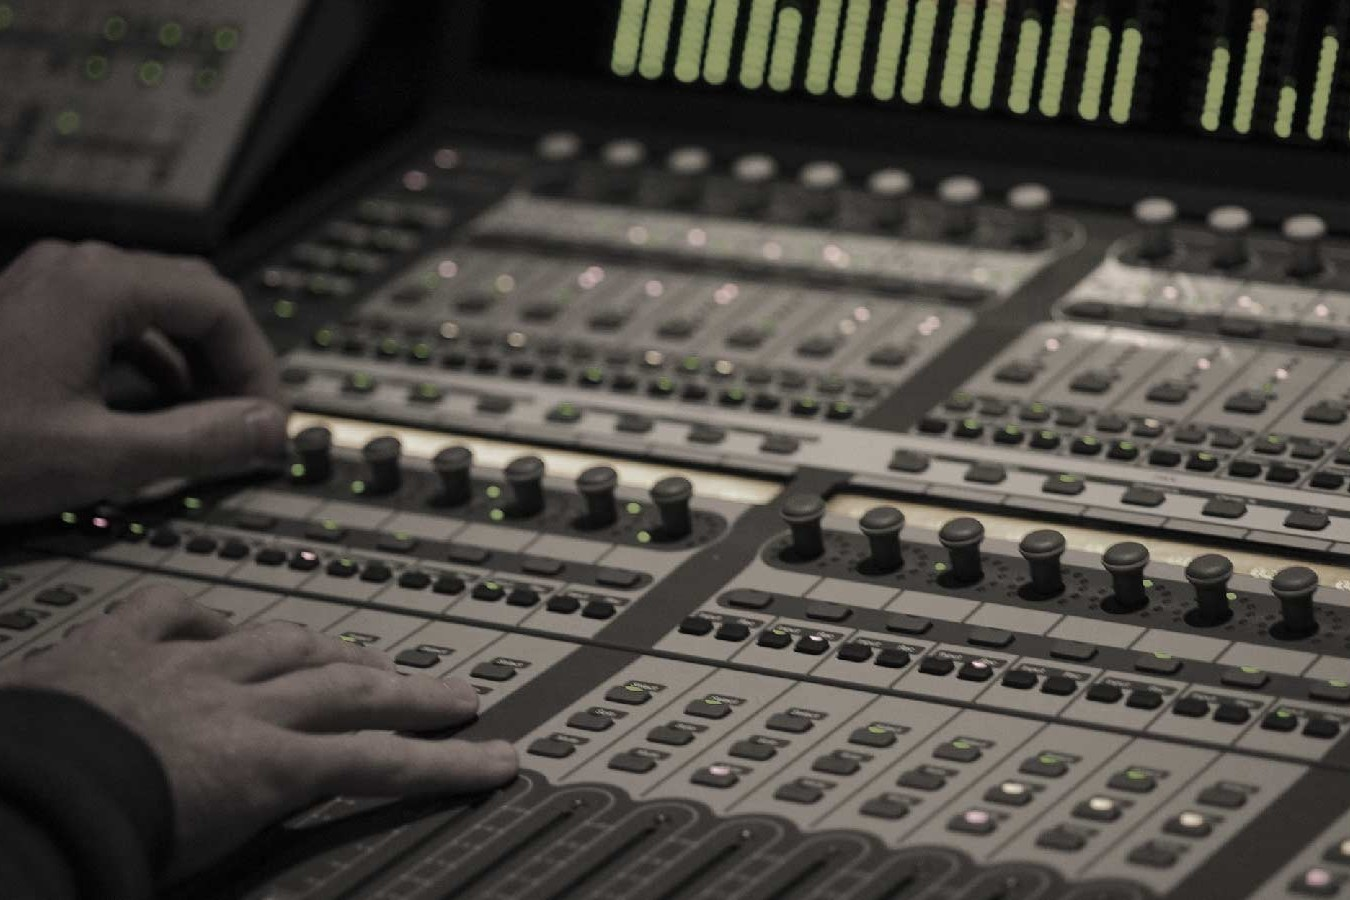 image of a sound engineer's hands on the faders of a mixing console